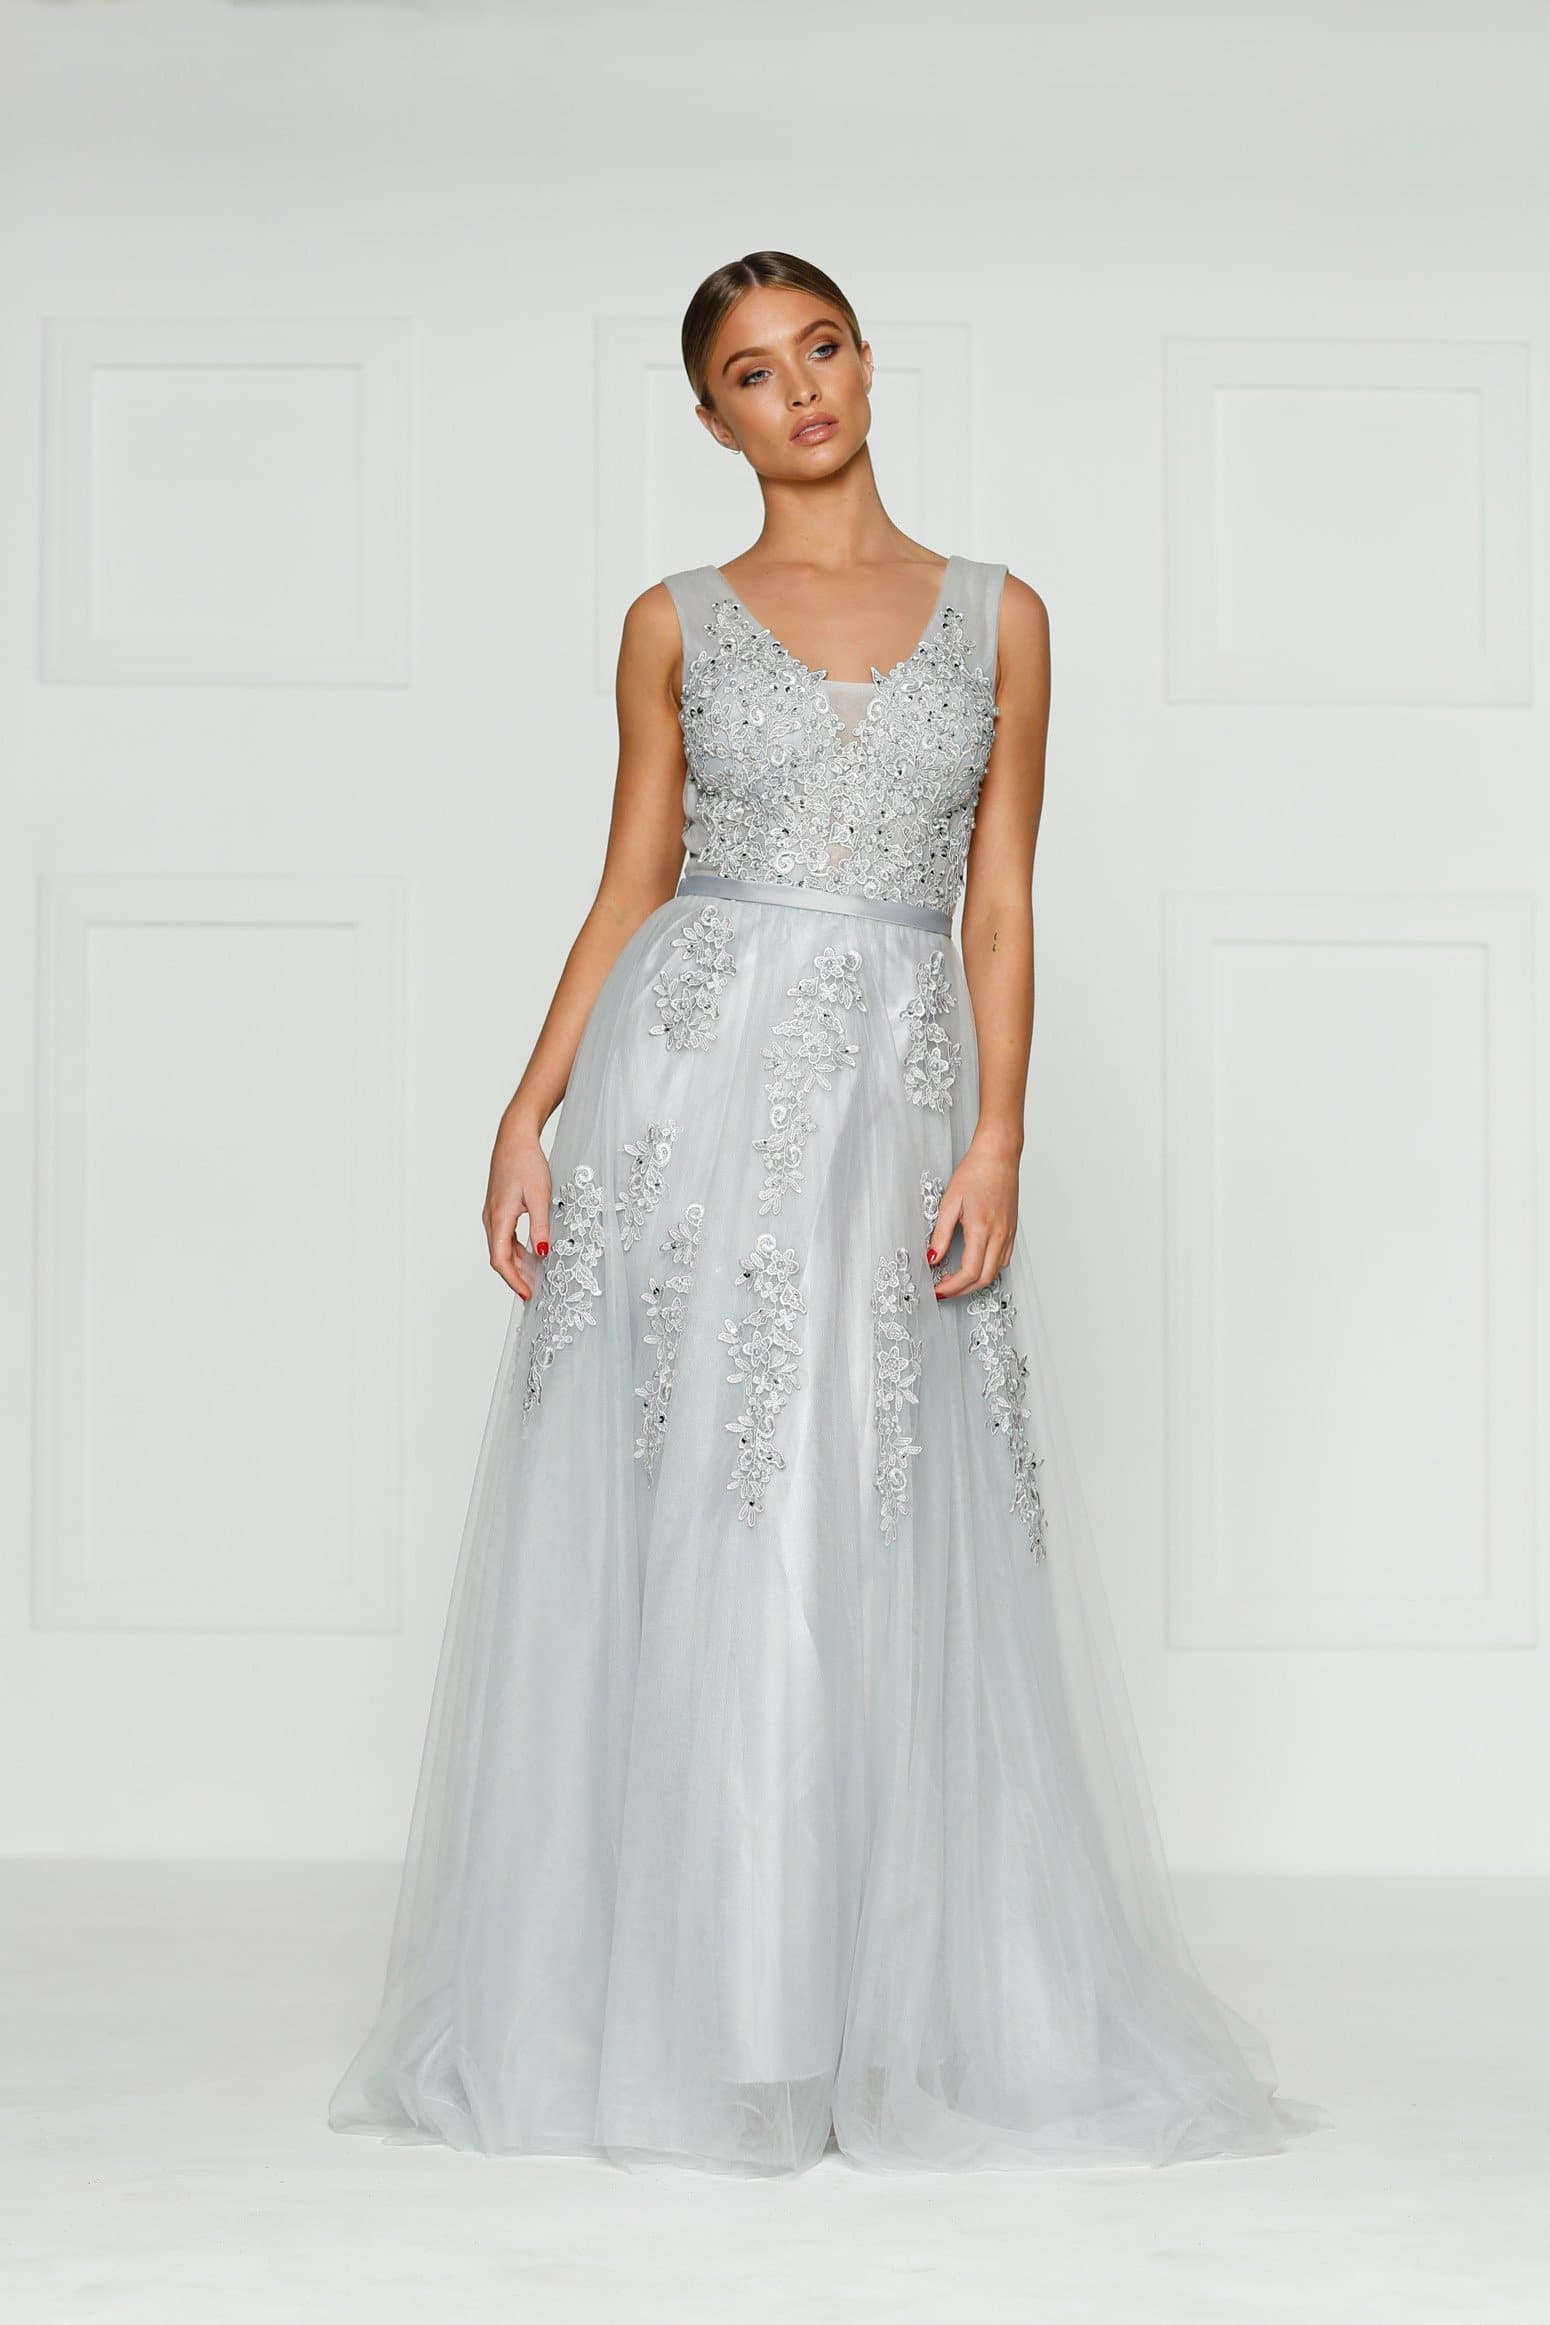 A&N Louis - Grey Princess Tulle Gown with Lace Detail and Low Back